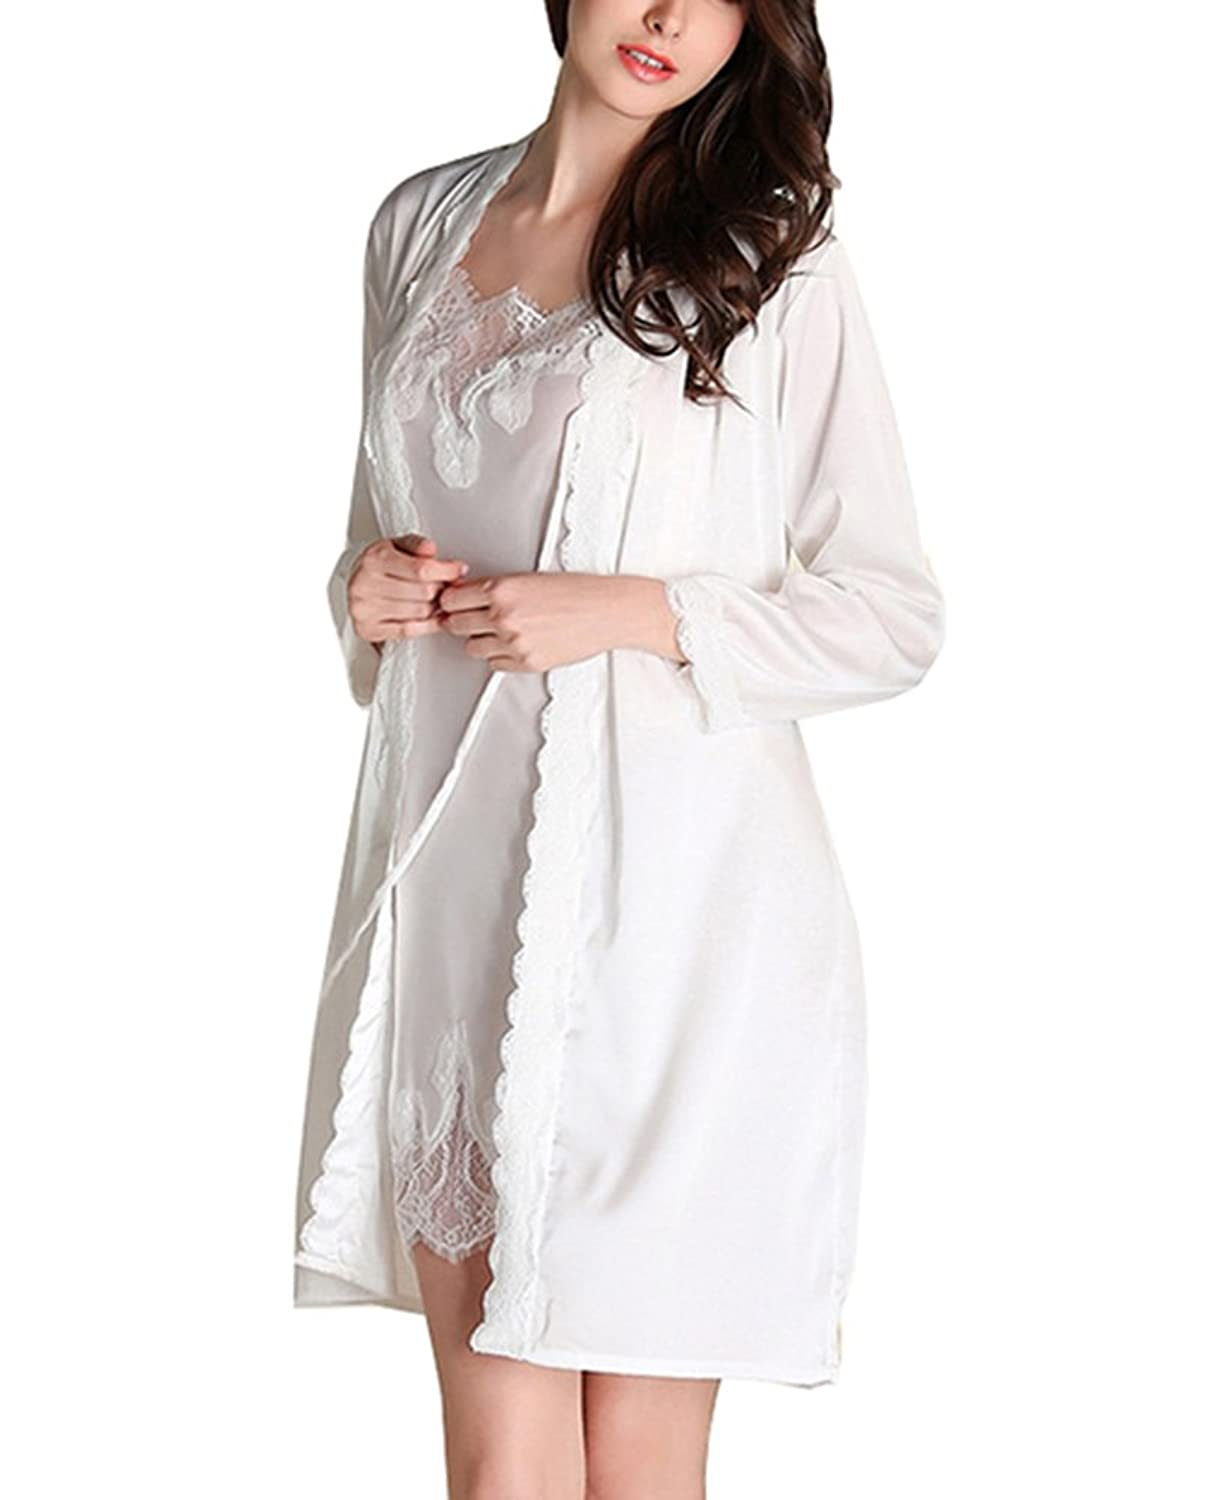 Cheerlife Women's Dressing Gown Large